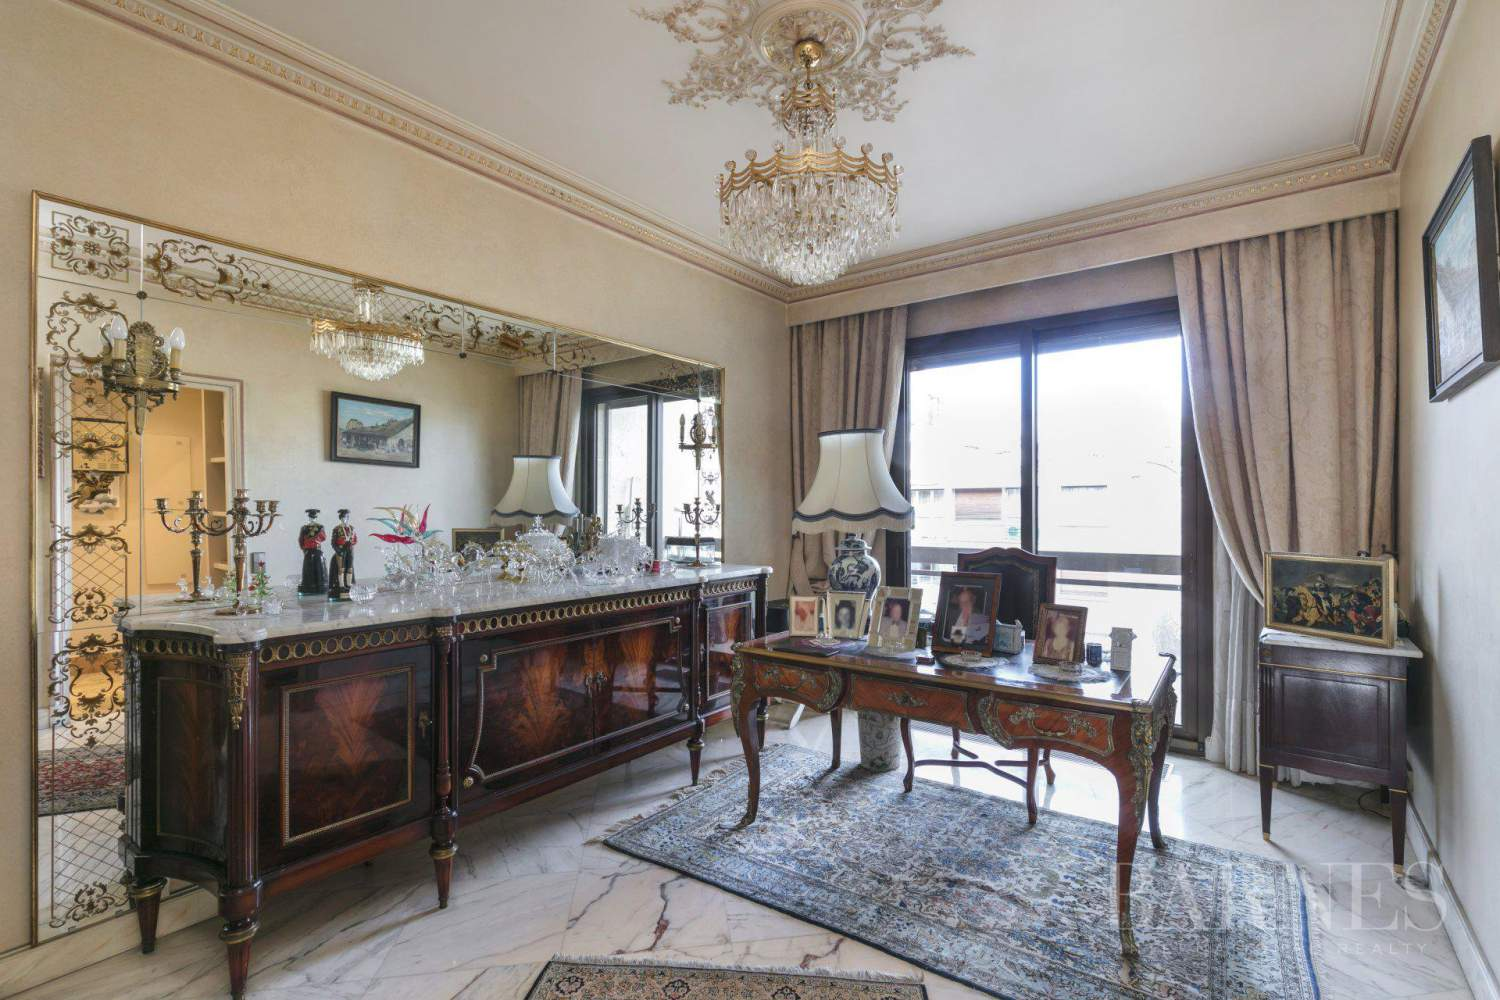 NEUILLY - BOIS - APPARTEMENT 5 PIECES - BALCONS LARGES - VUES PANORAMIQUES picture 4